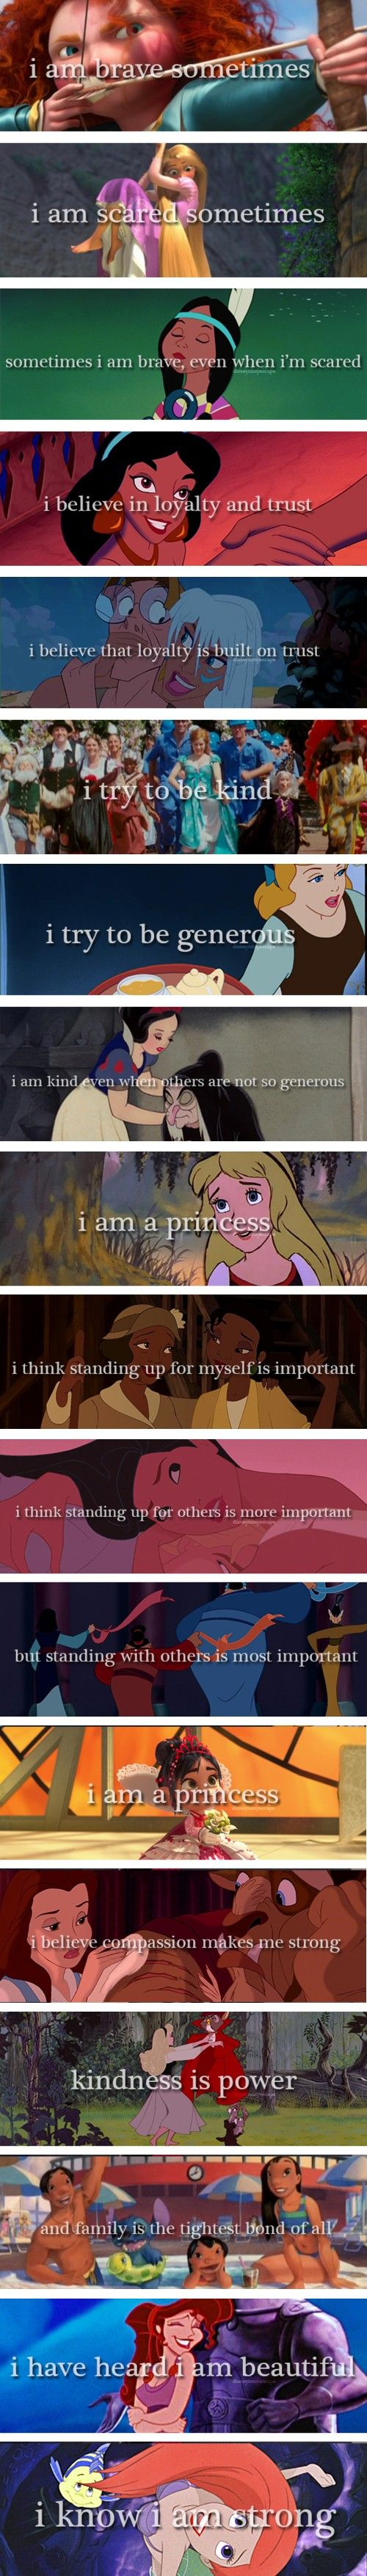 I am a Princess. Long may I reign. i love this!!!!